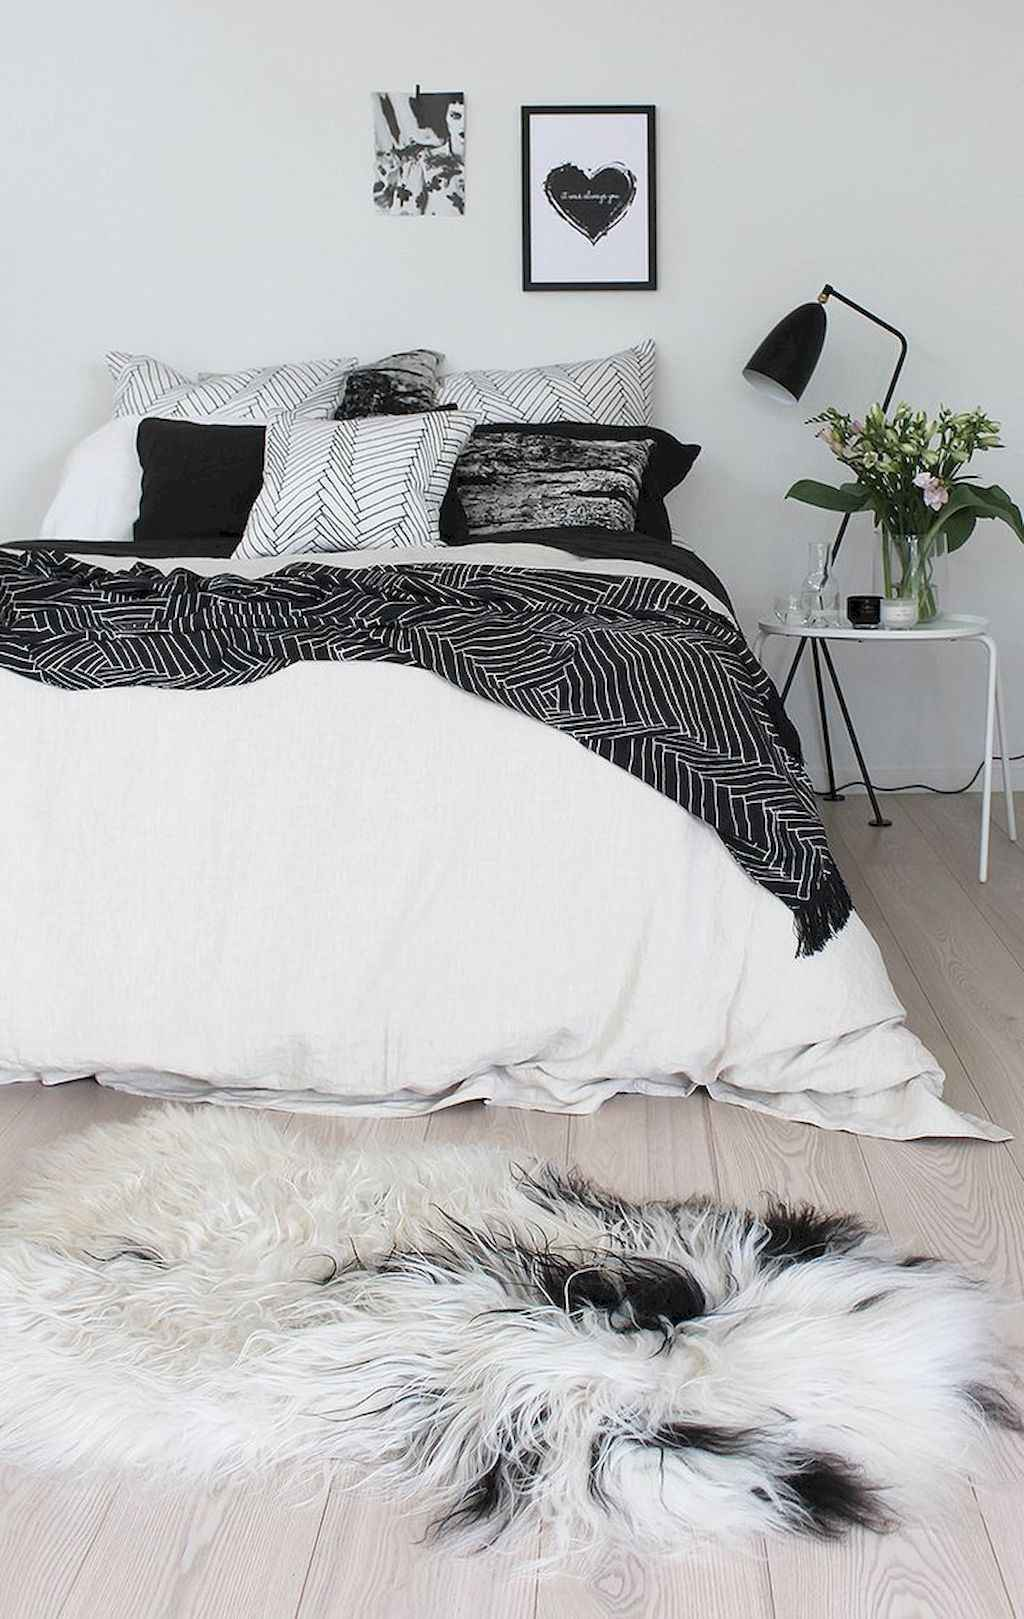 Awesome bedroom decoration ideas (50)